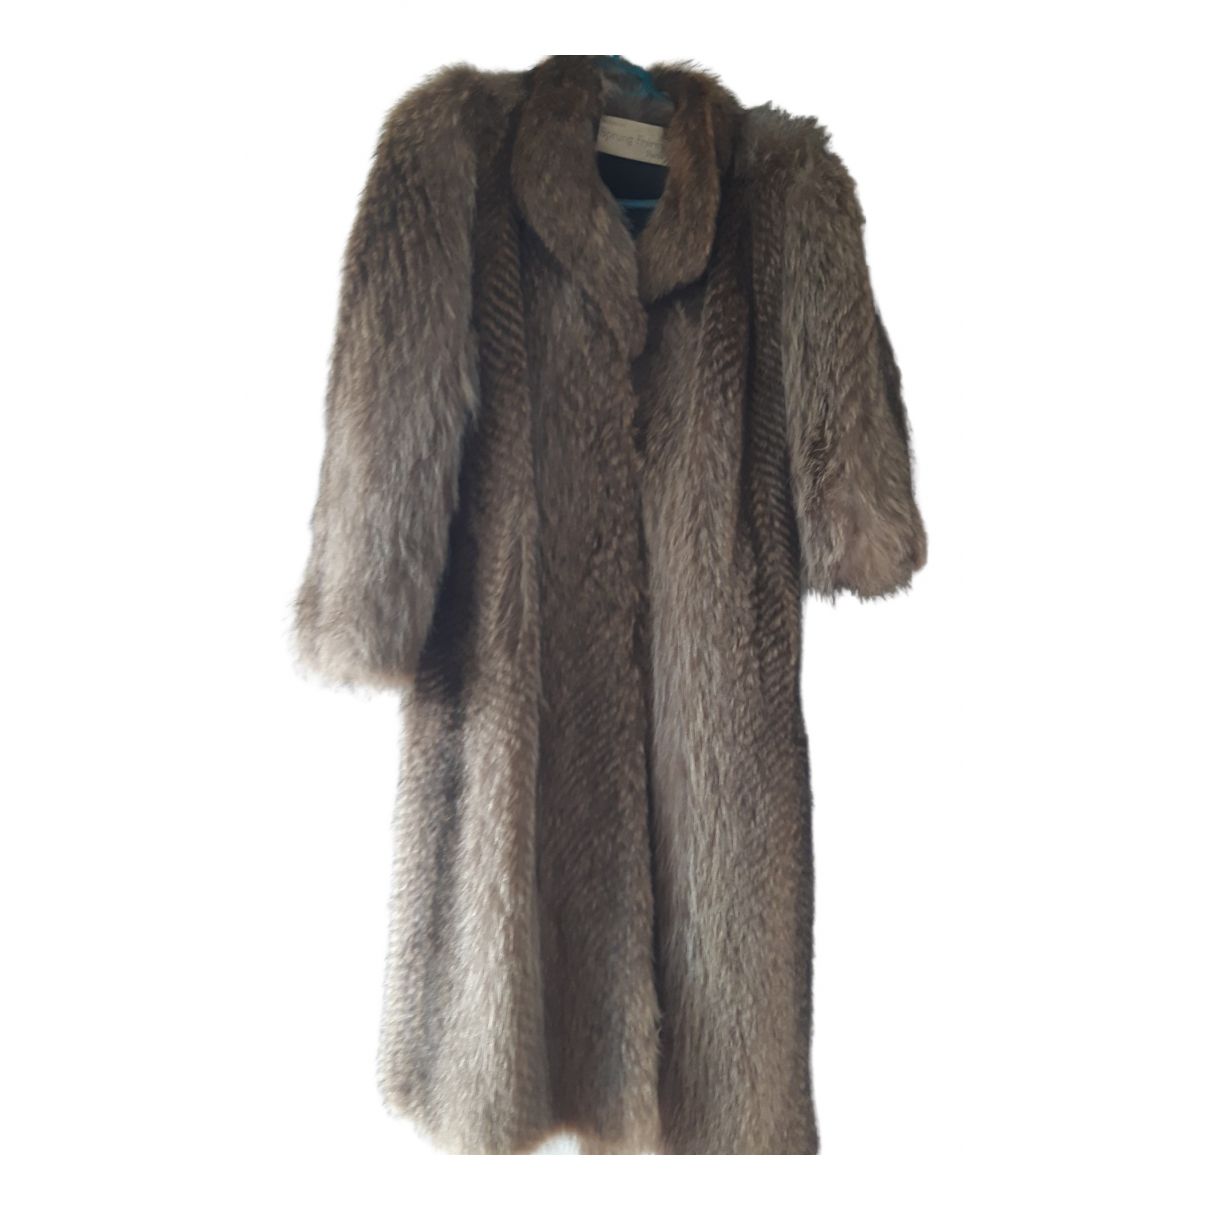 Sprung Frères N Brown Fur coat for Women One Size FR